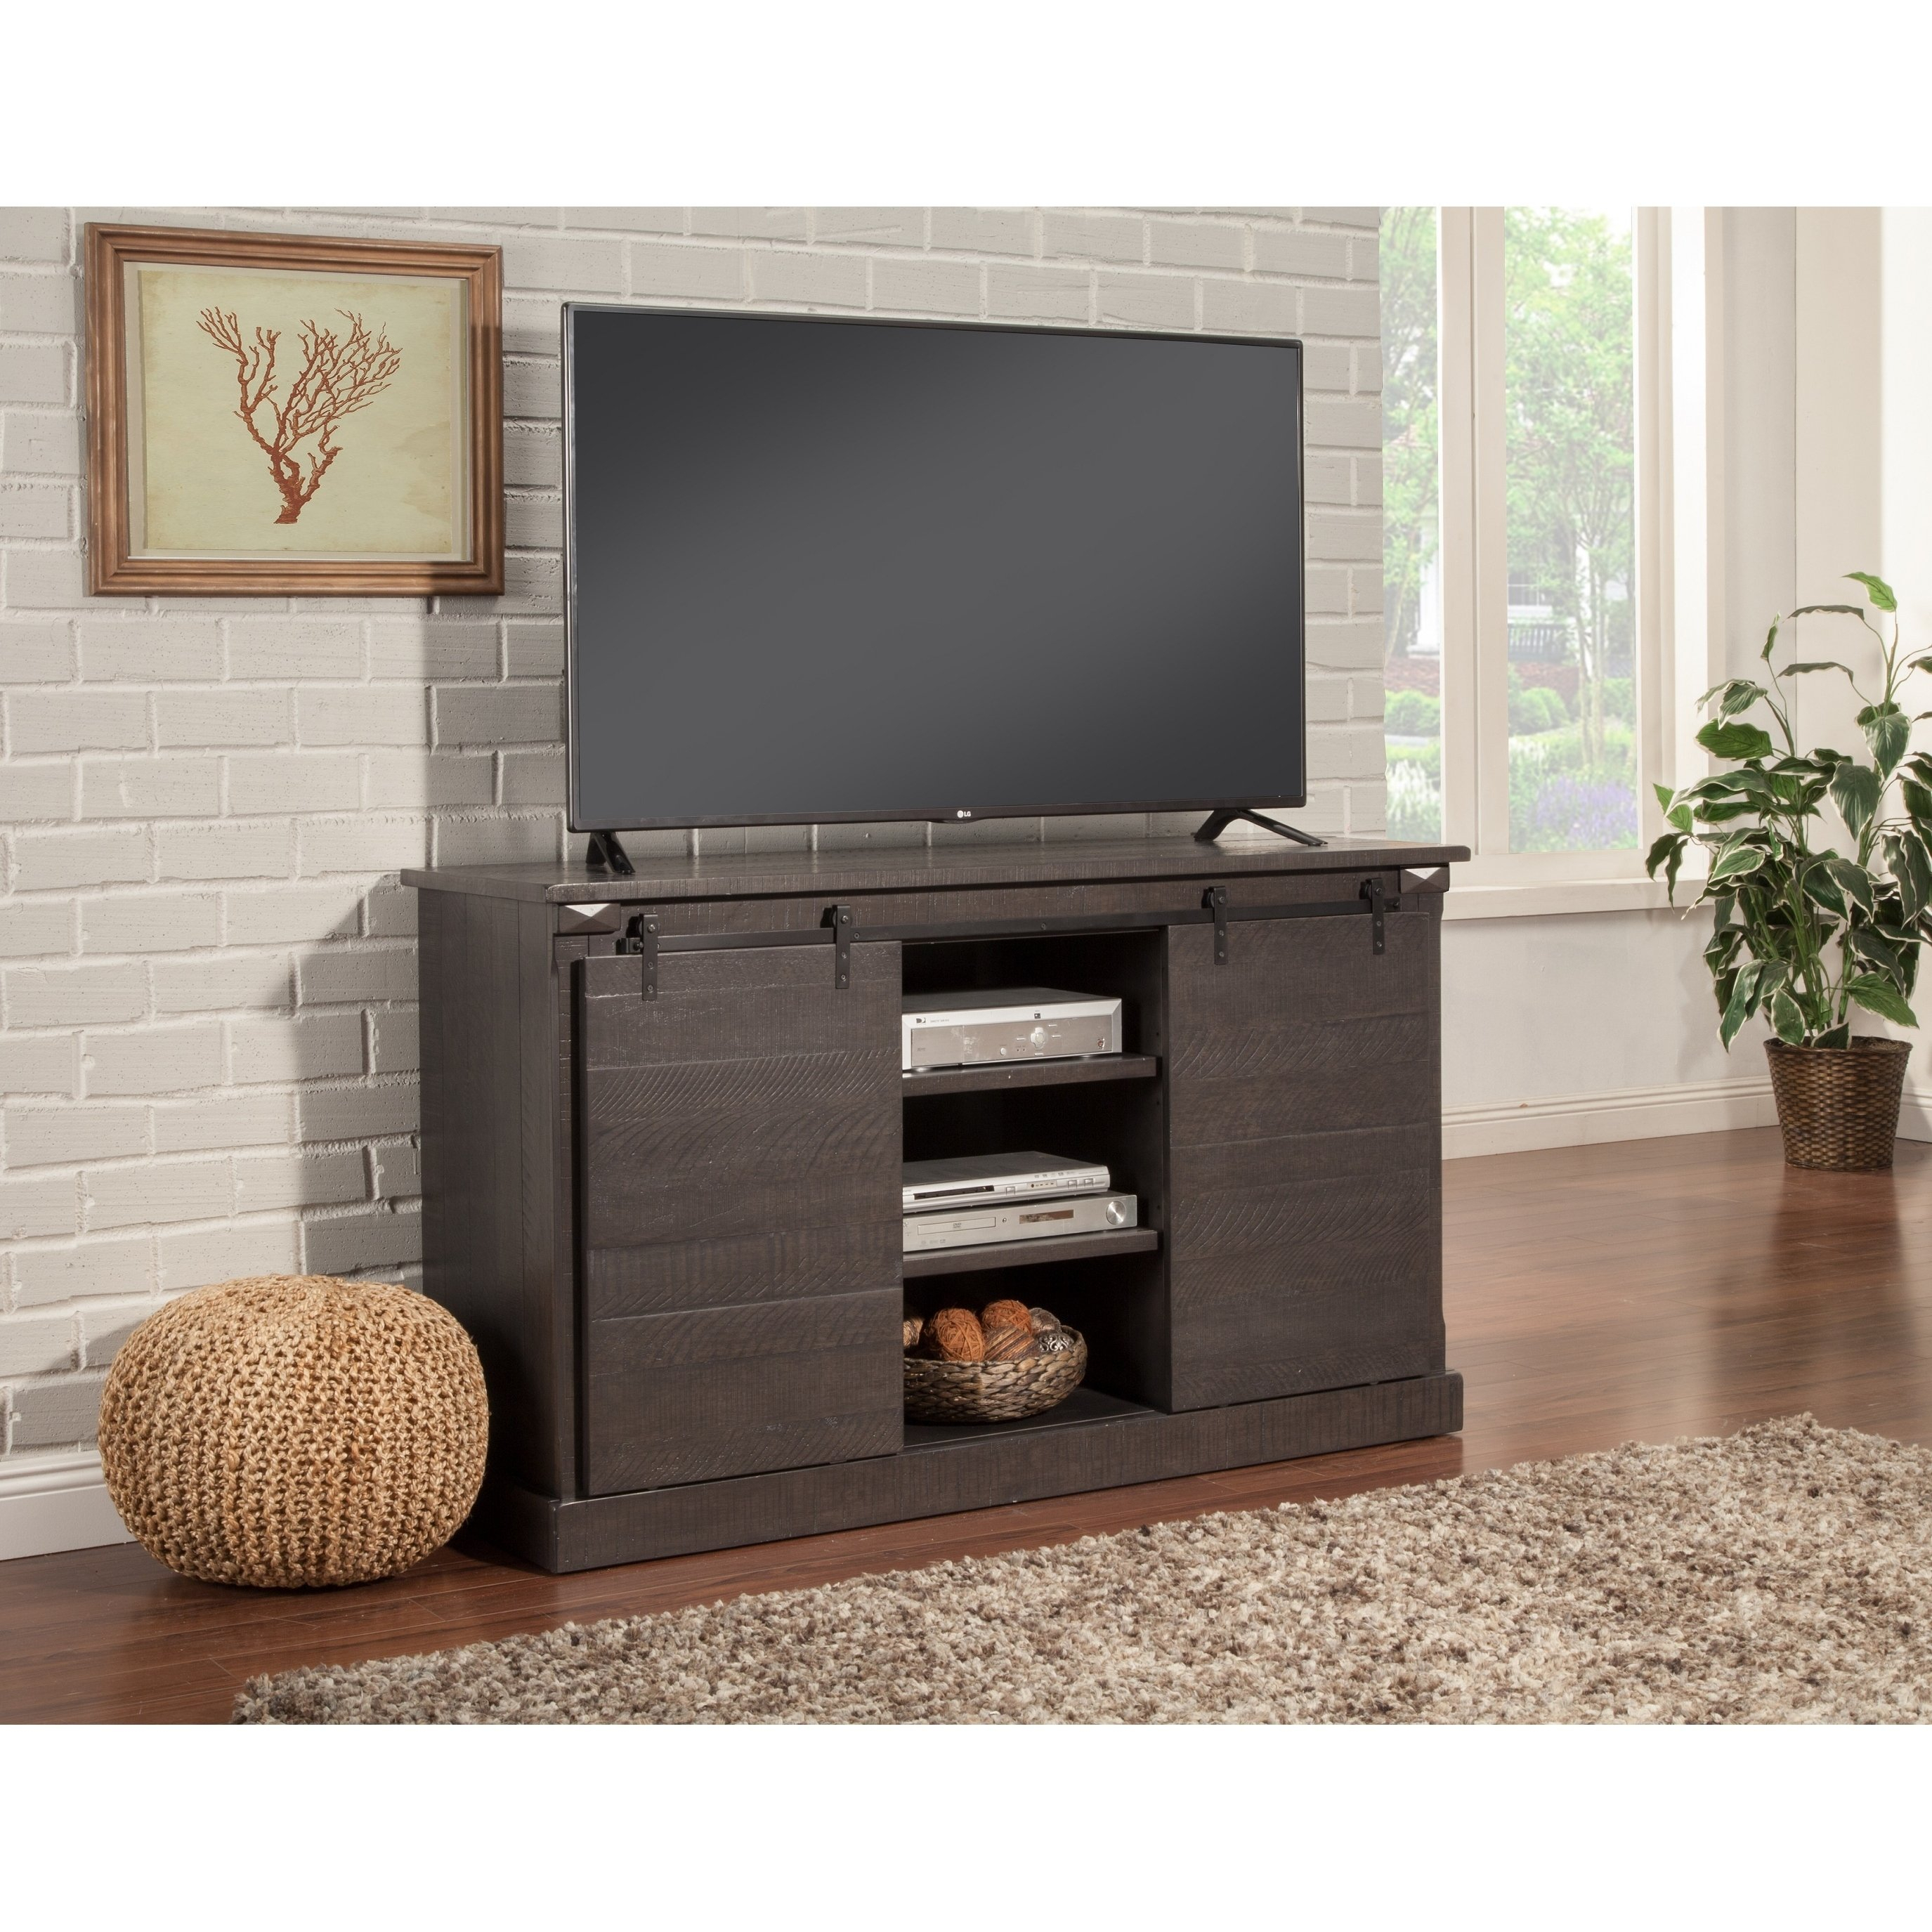 Buy Grey, 42 – 60 Inches Tv Stands & Entertainment Centers Online At With Regard To Rowan 74 Inch Tv Stands (View 11 of 30)